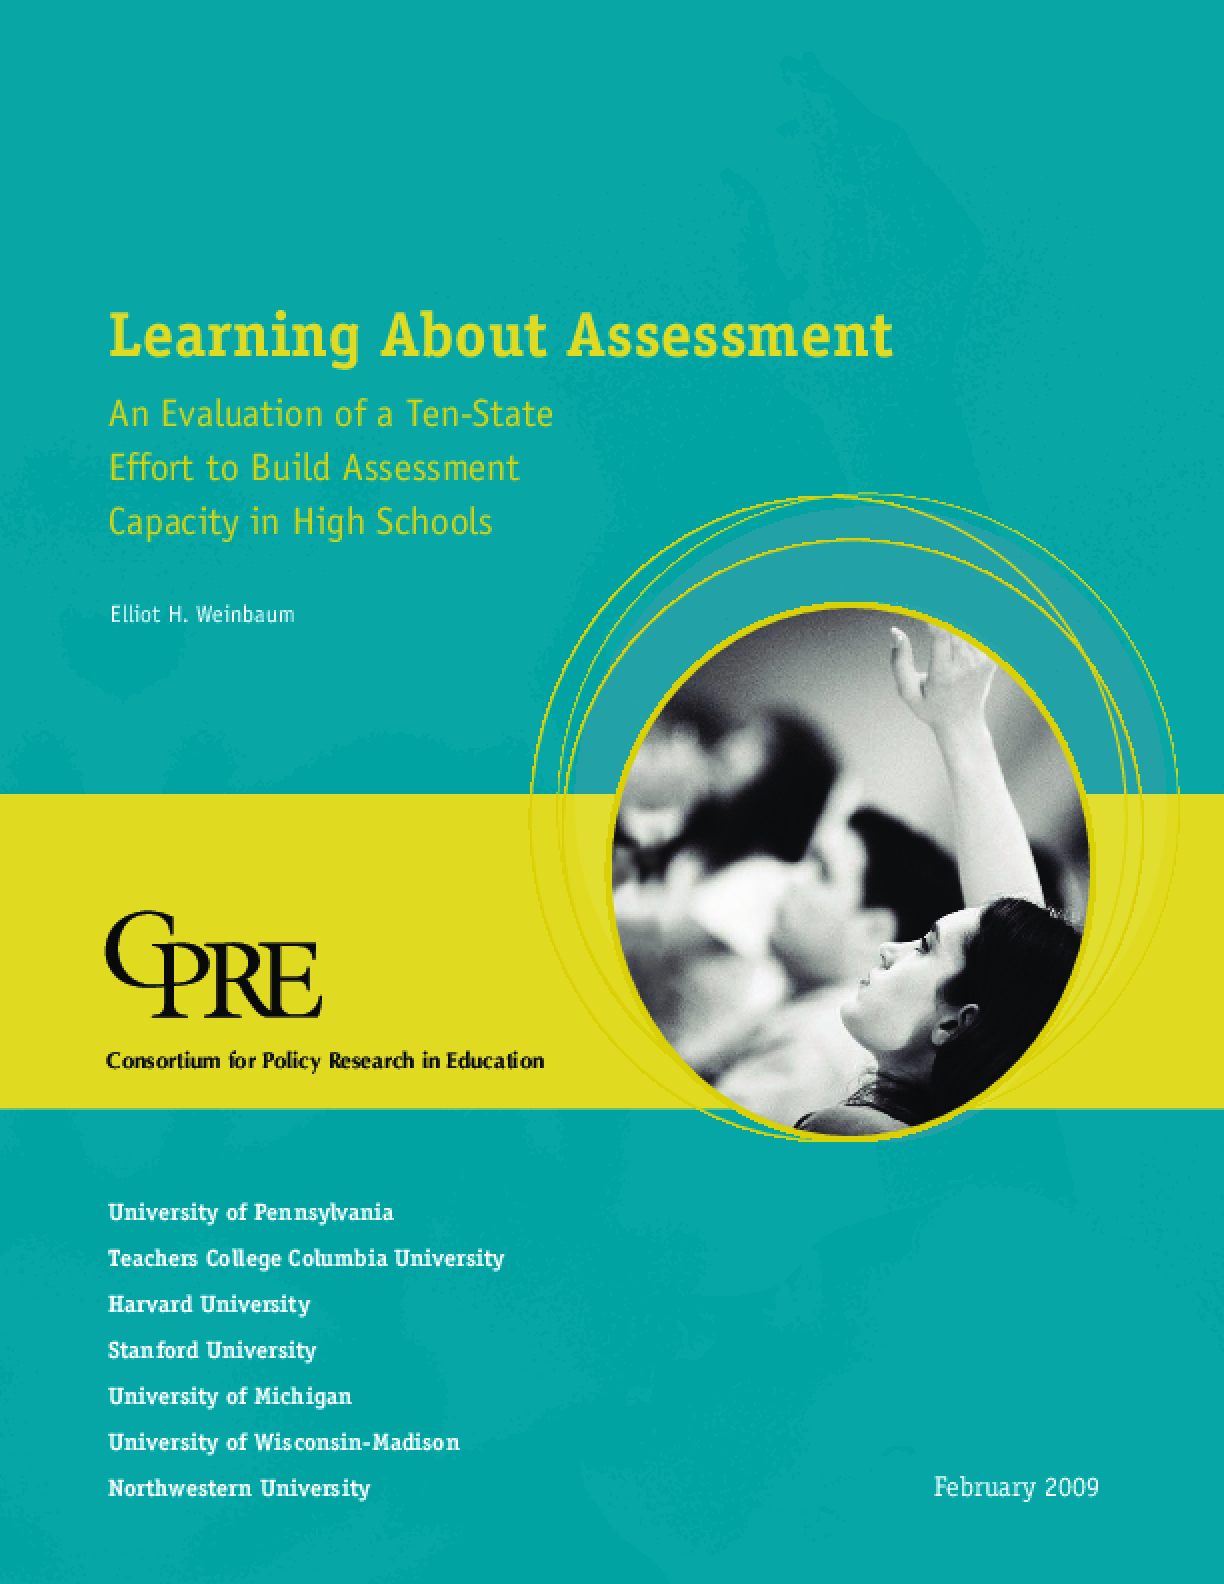 Learning About Assessment: An Evaluation of a Ten-State Effort to Build Assessment Capacity in High Schools